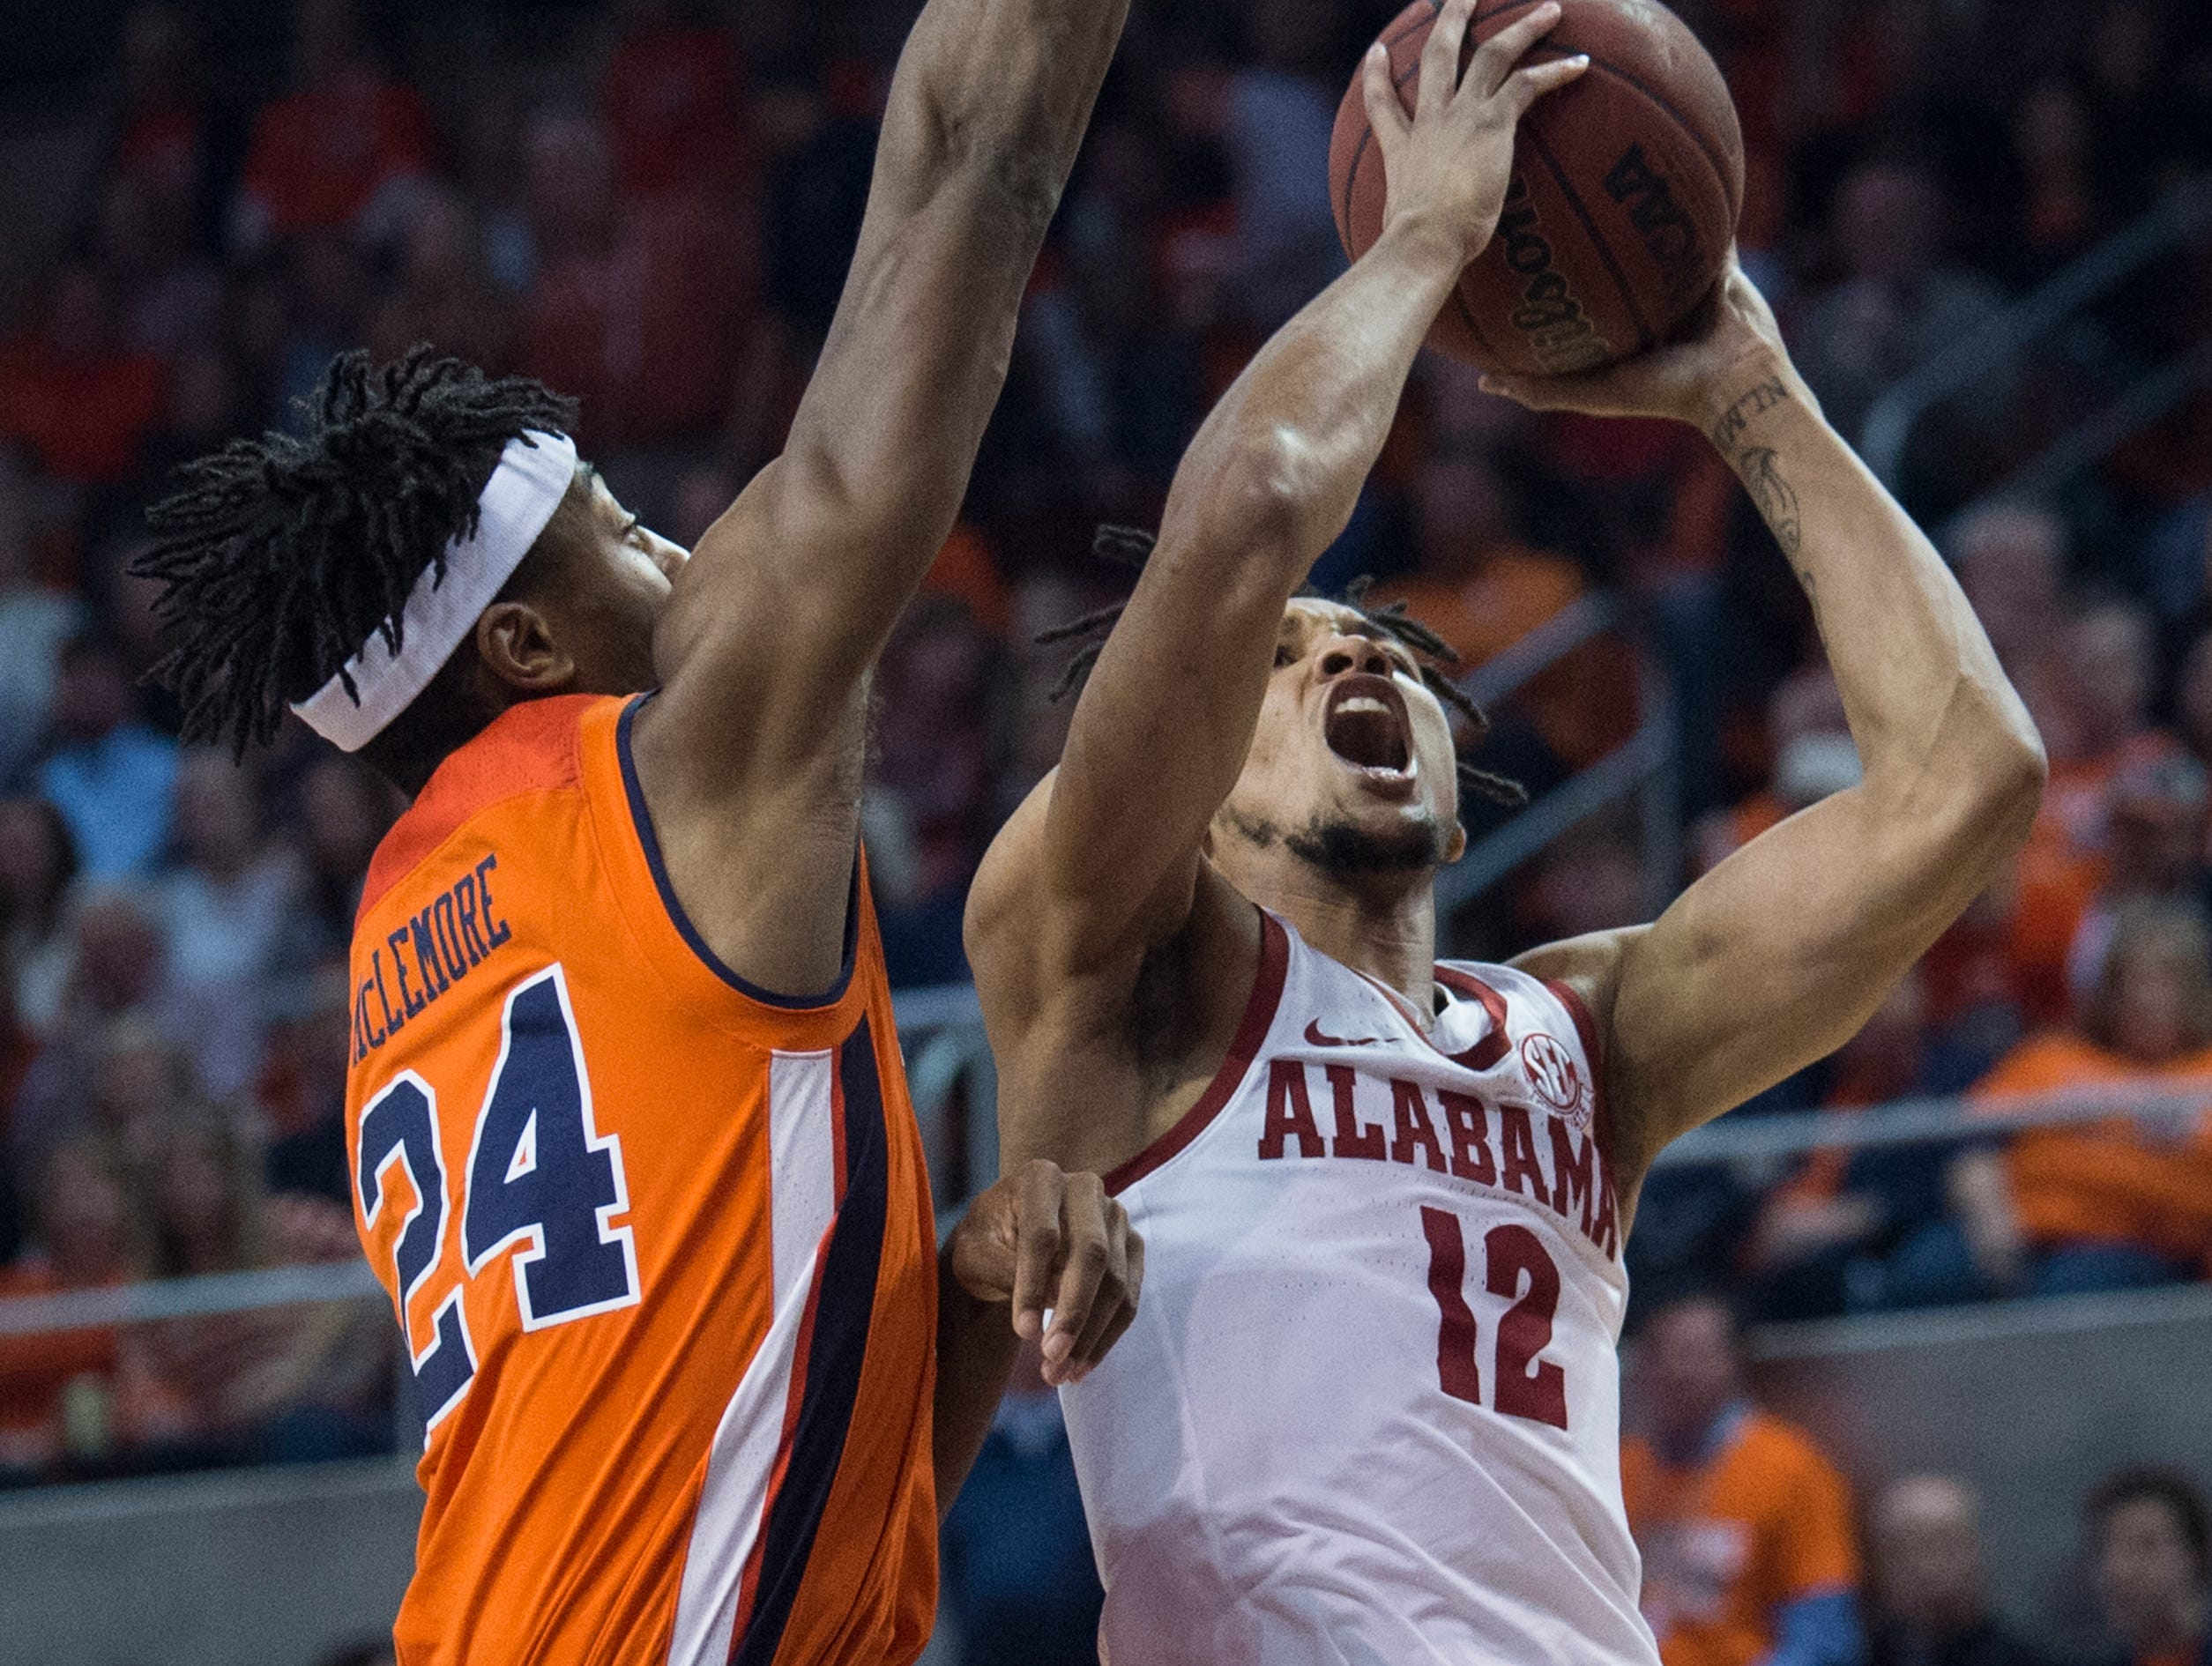 Alabama guard Dazon Ingram (12) goes up for a layup over Auburn forward Anfernee McLemore (24) at Auburn Arena in Auburn, Ala., on Saturday, Feb. 2, 2019. Auburn leads Alabama 48-28 at halftime.